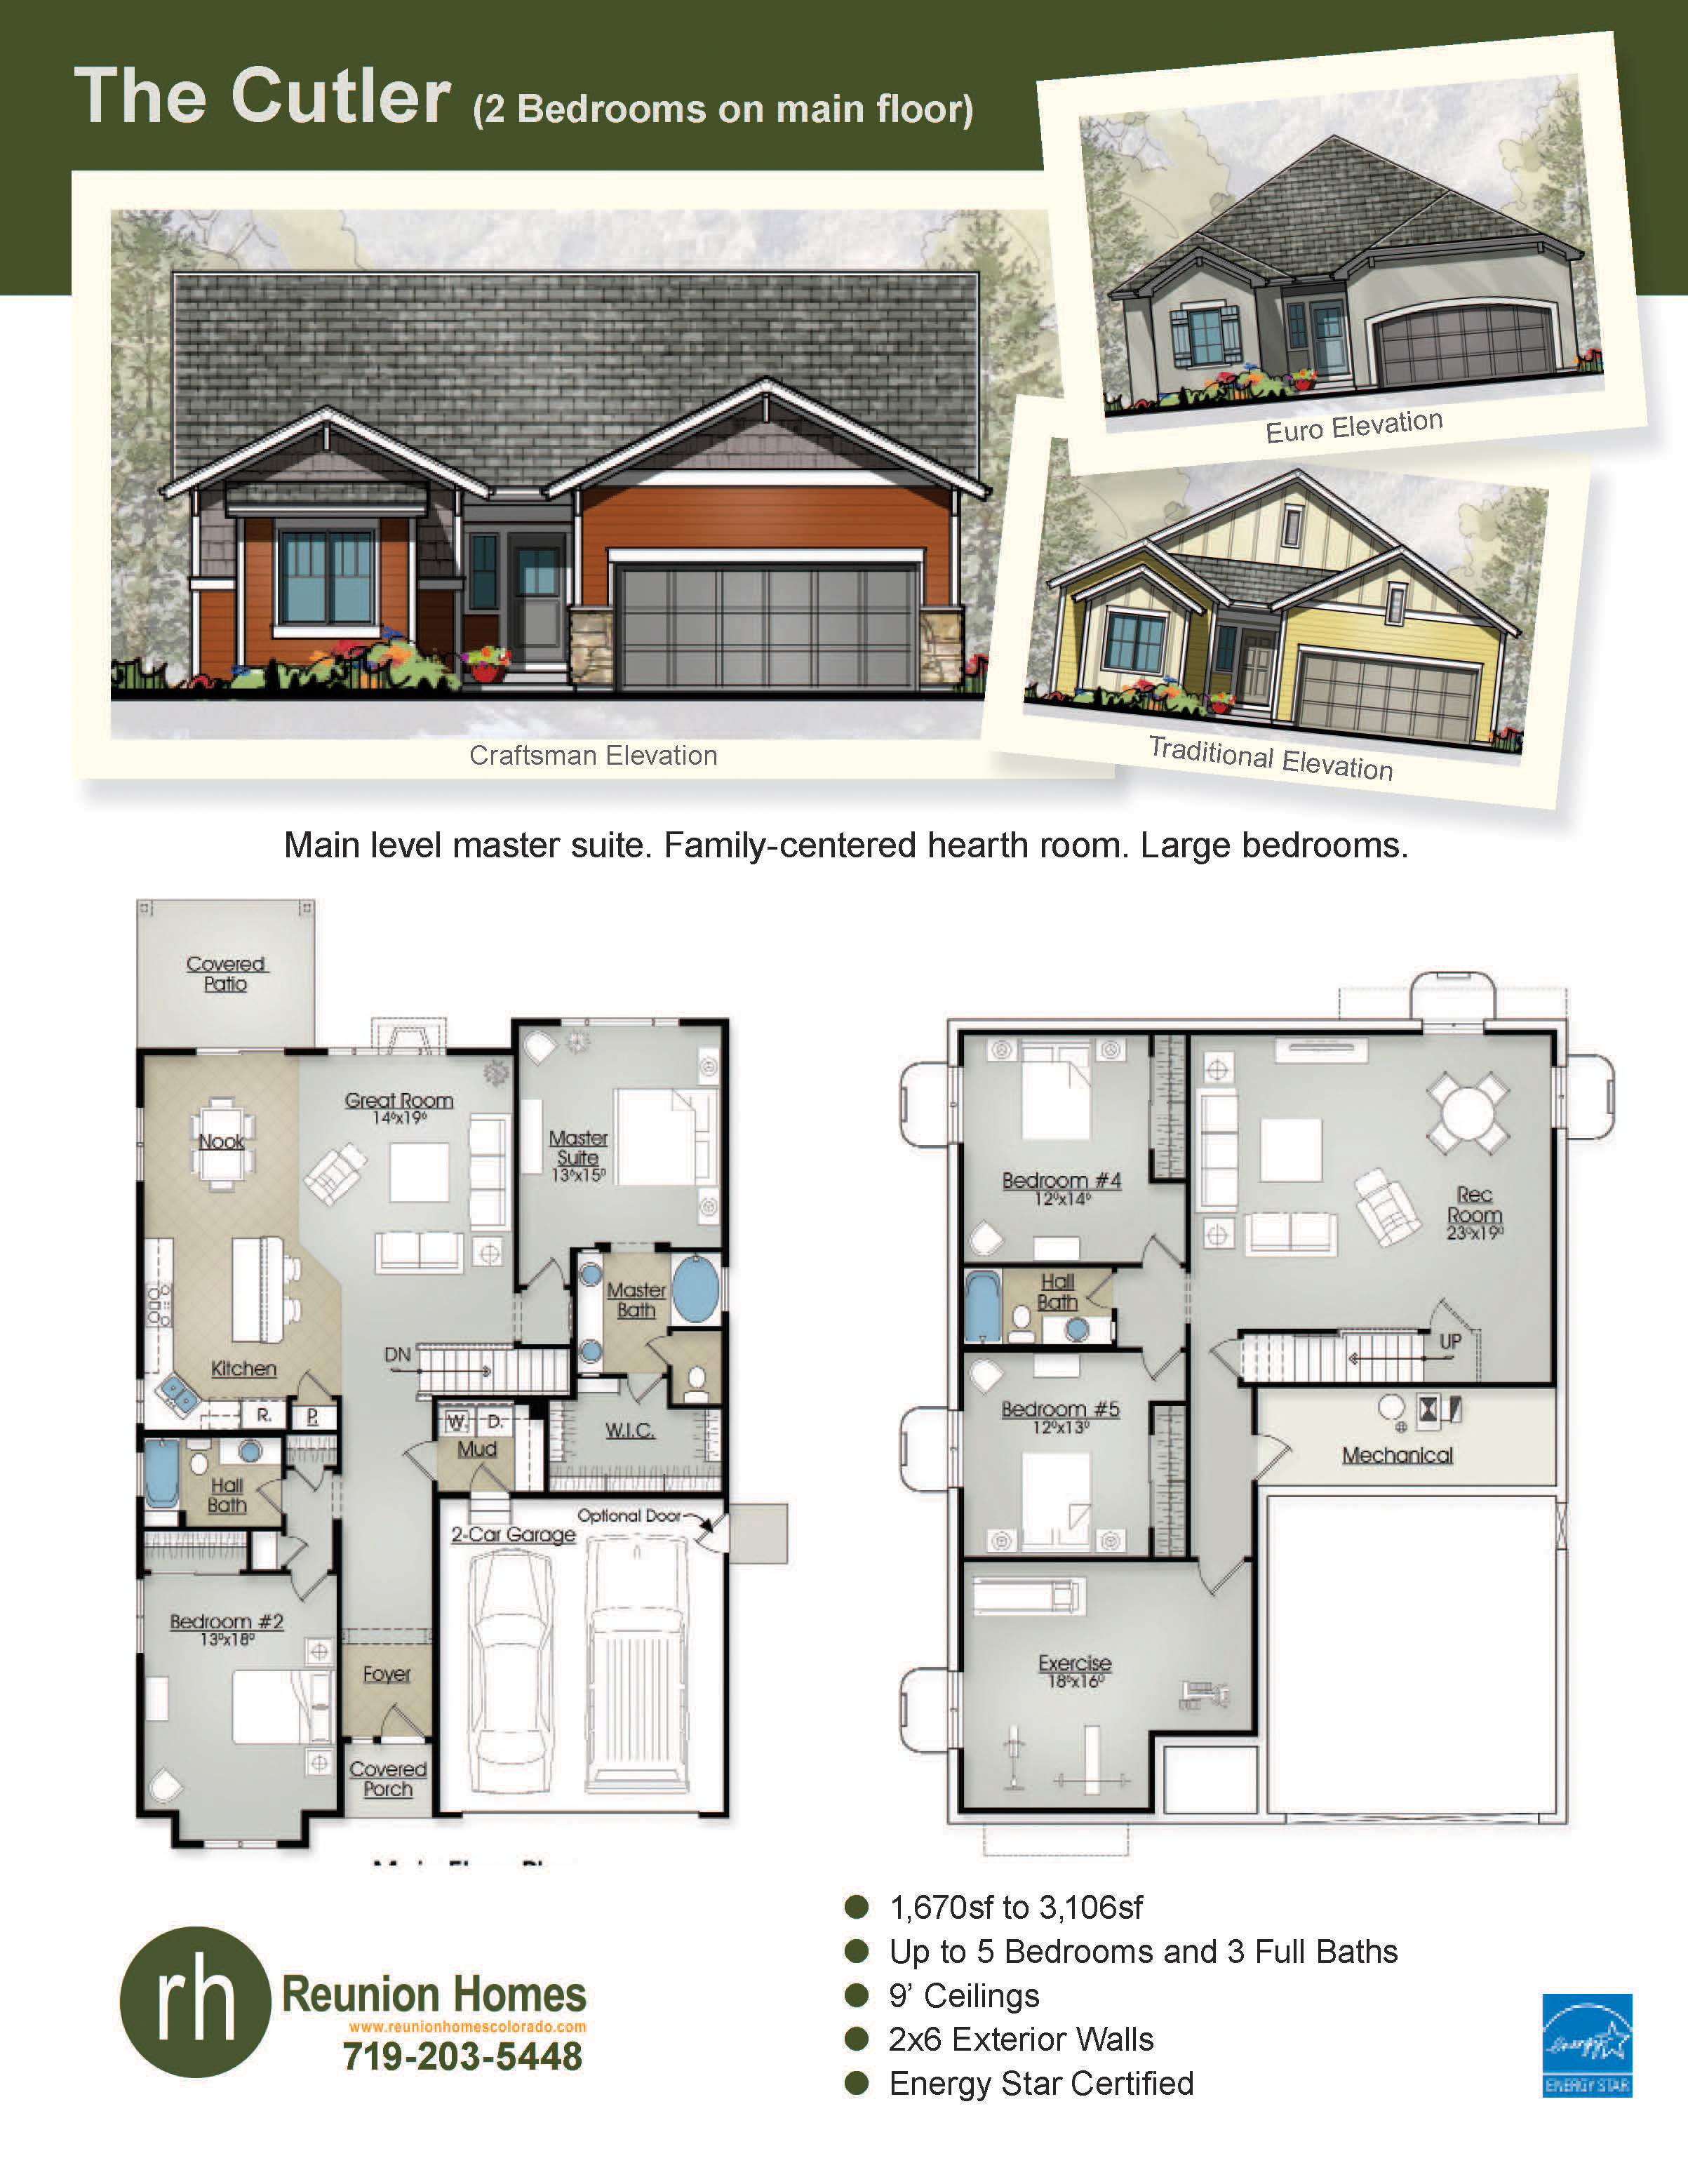 cutler2bed- home plan-new